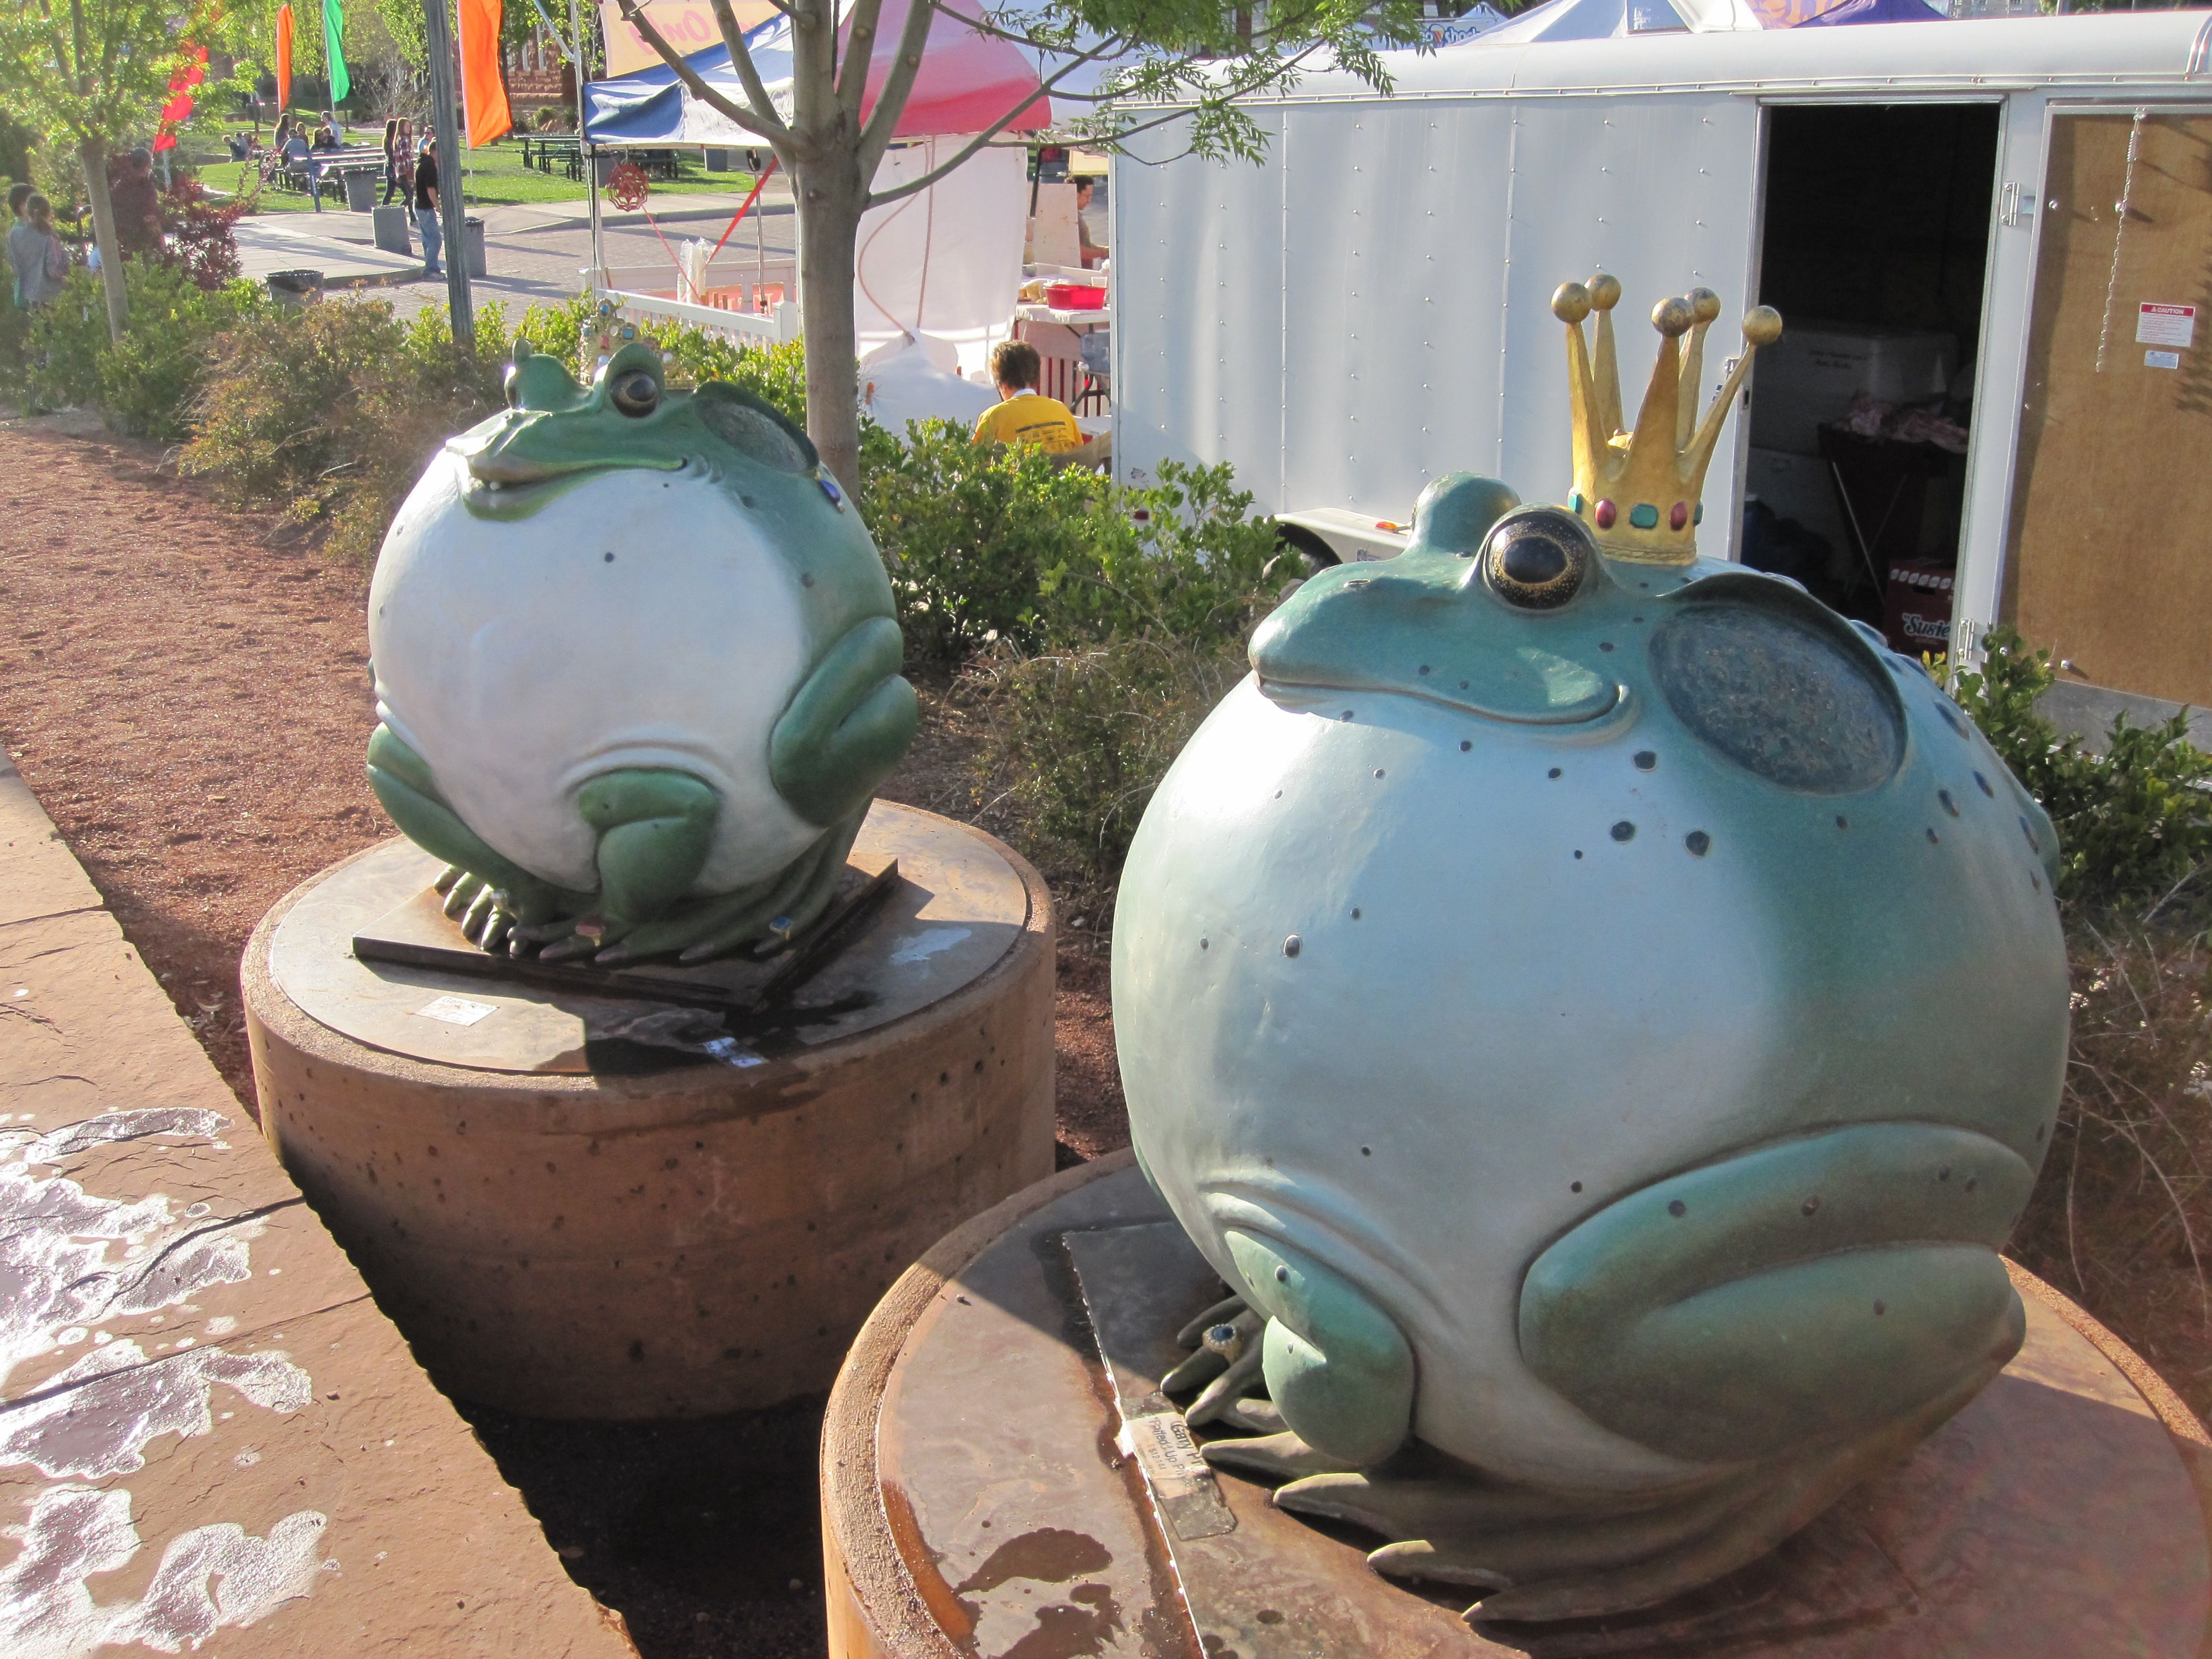 Frog Royalty Cute Sculptures That Reigned Over The Event St George Utah St George Art Festival